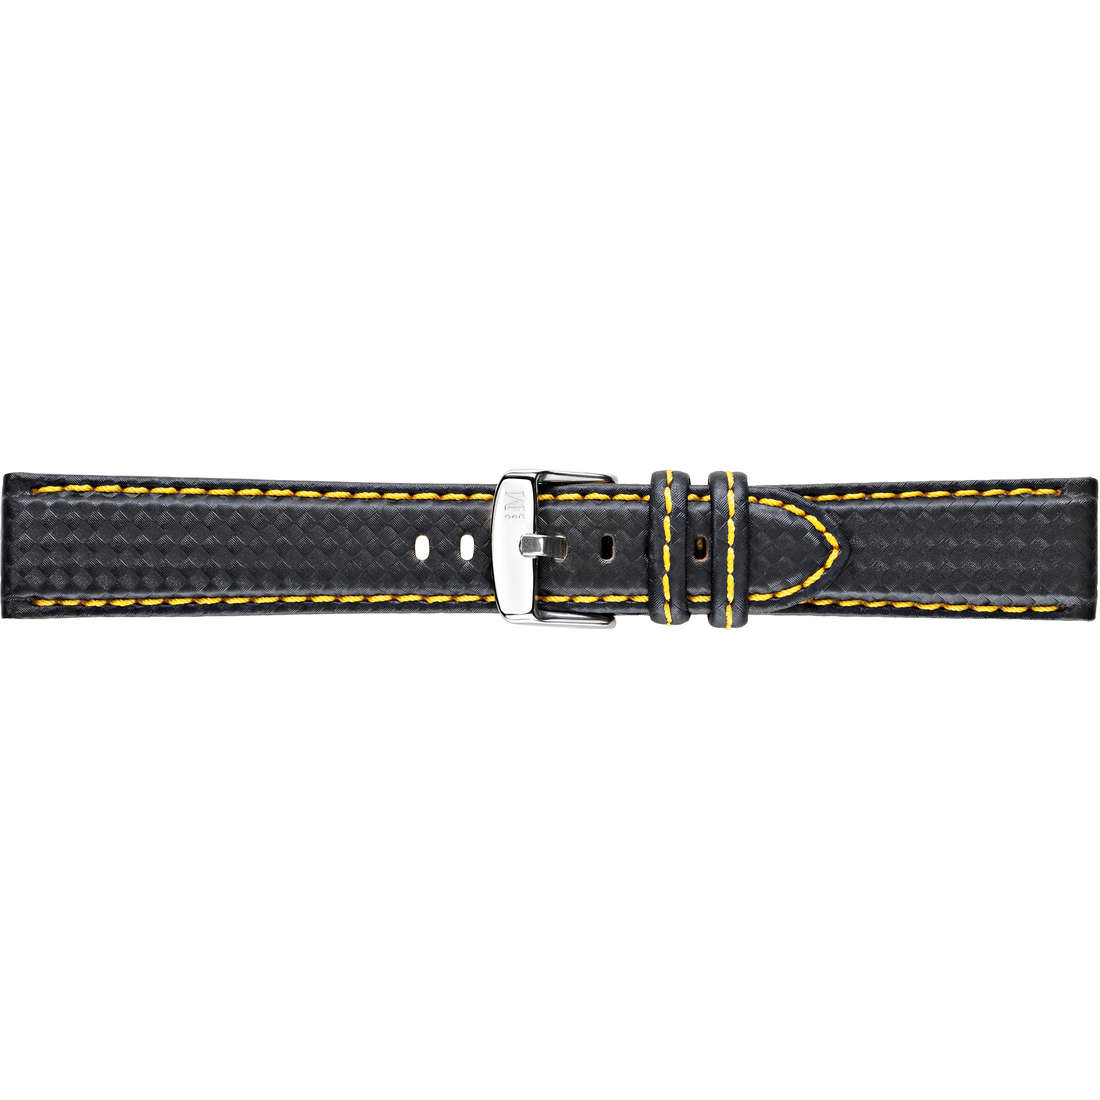 watch watch bands watch straps man Morellato Linea Sport A01U3586977897CR24